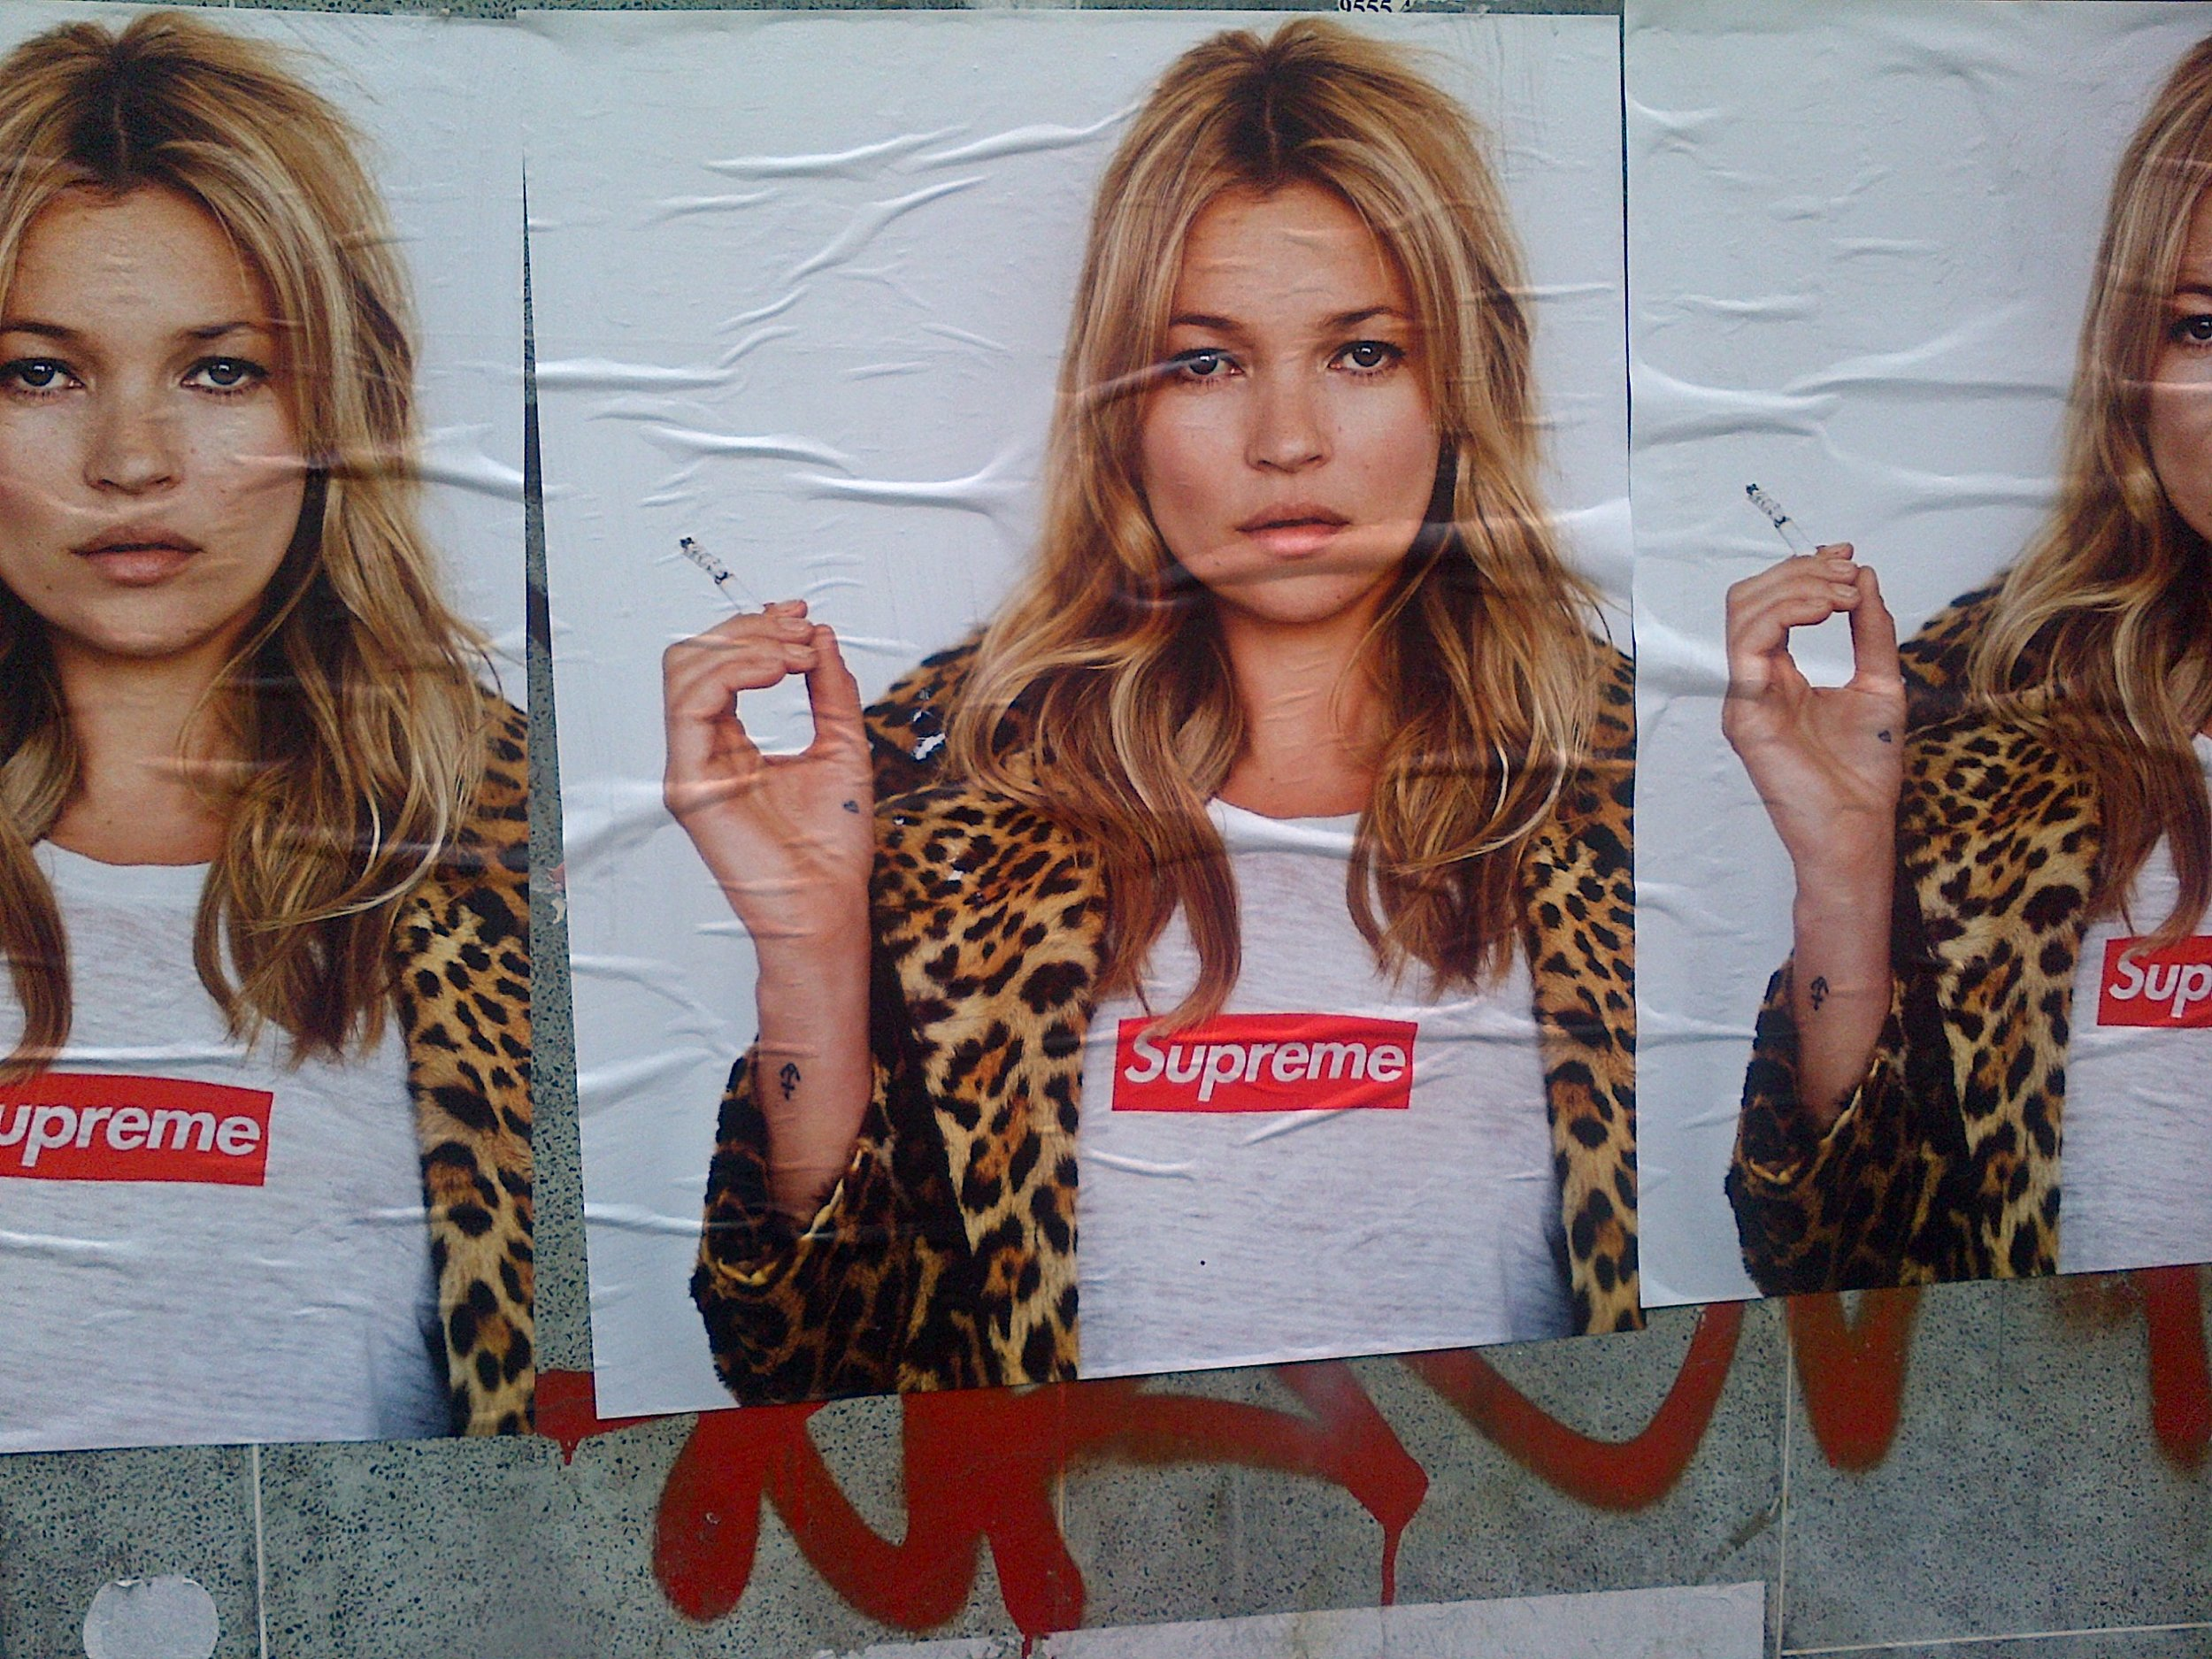 Kate Moss for Supreme in all streets of New York